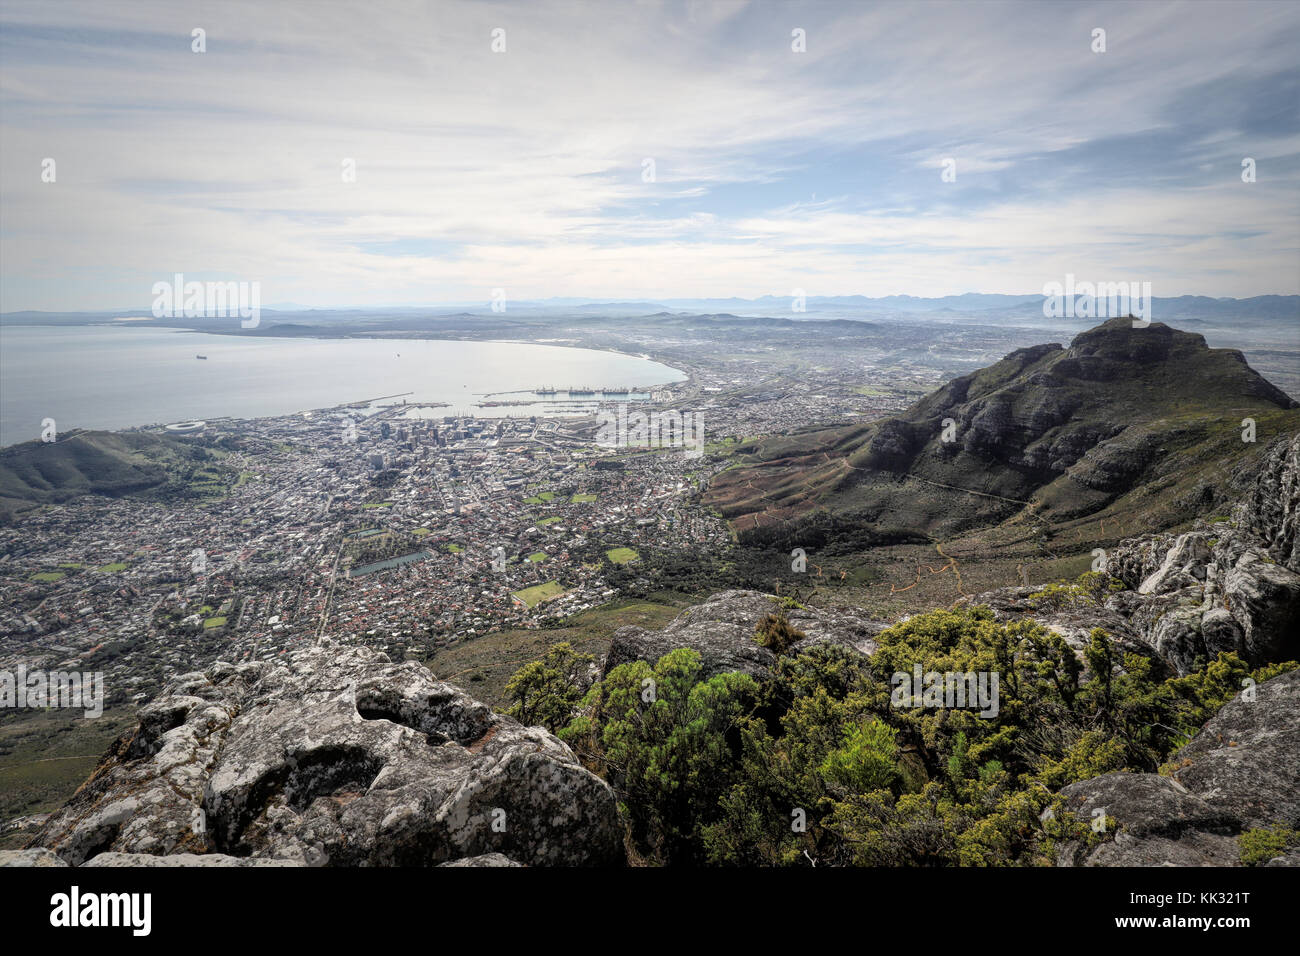 Hiking on the Table Mountain, Cape Town, South Africa - Stock Image